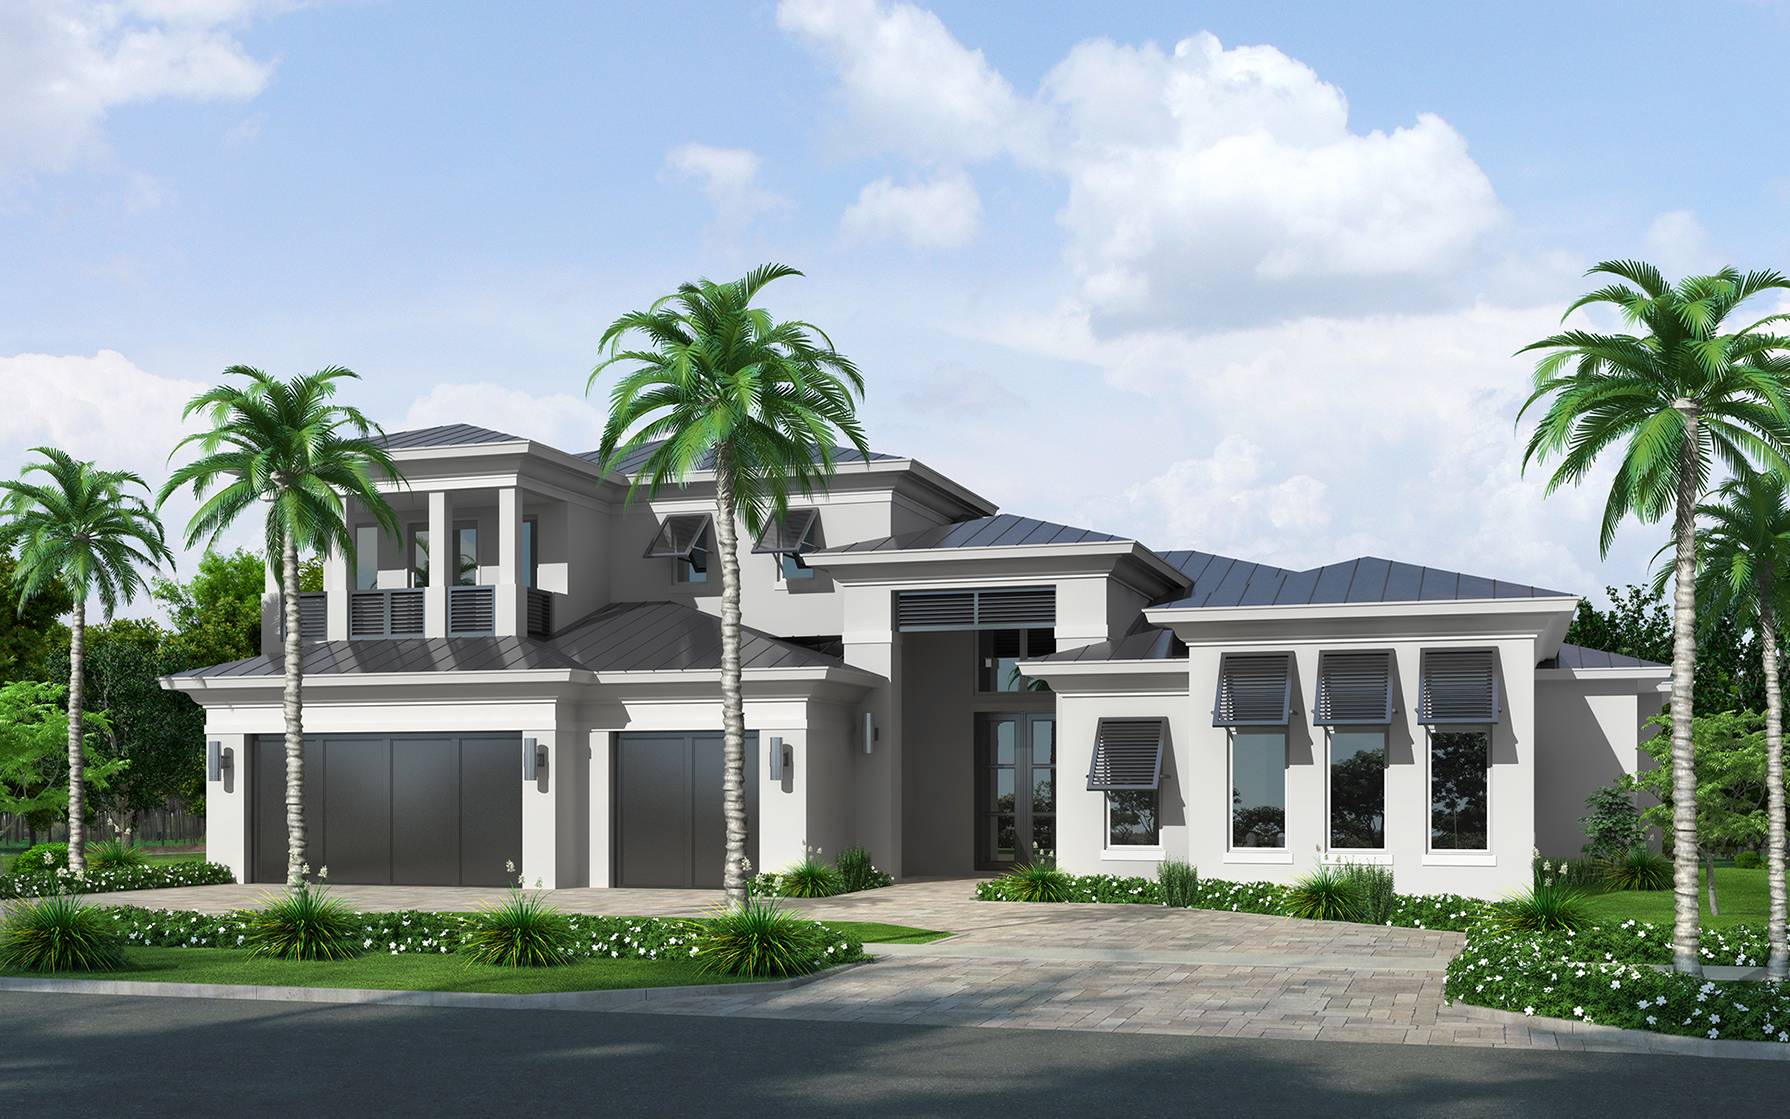 South florida custom home building ccm 561 436 3679 for Building a house in florida